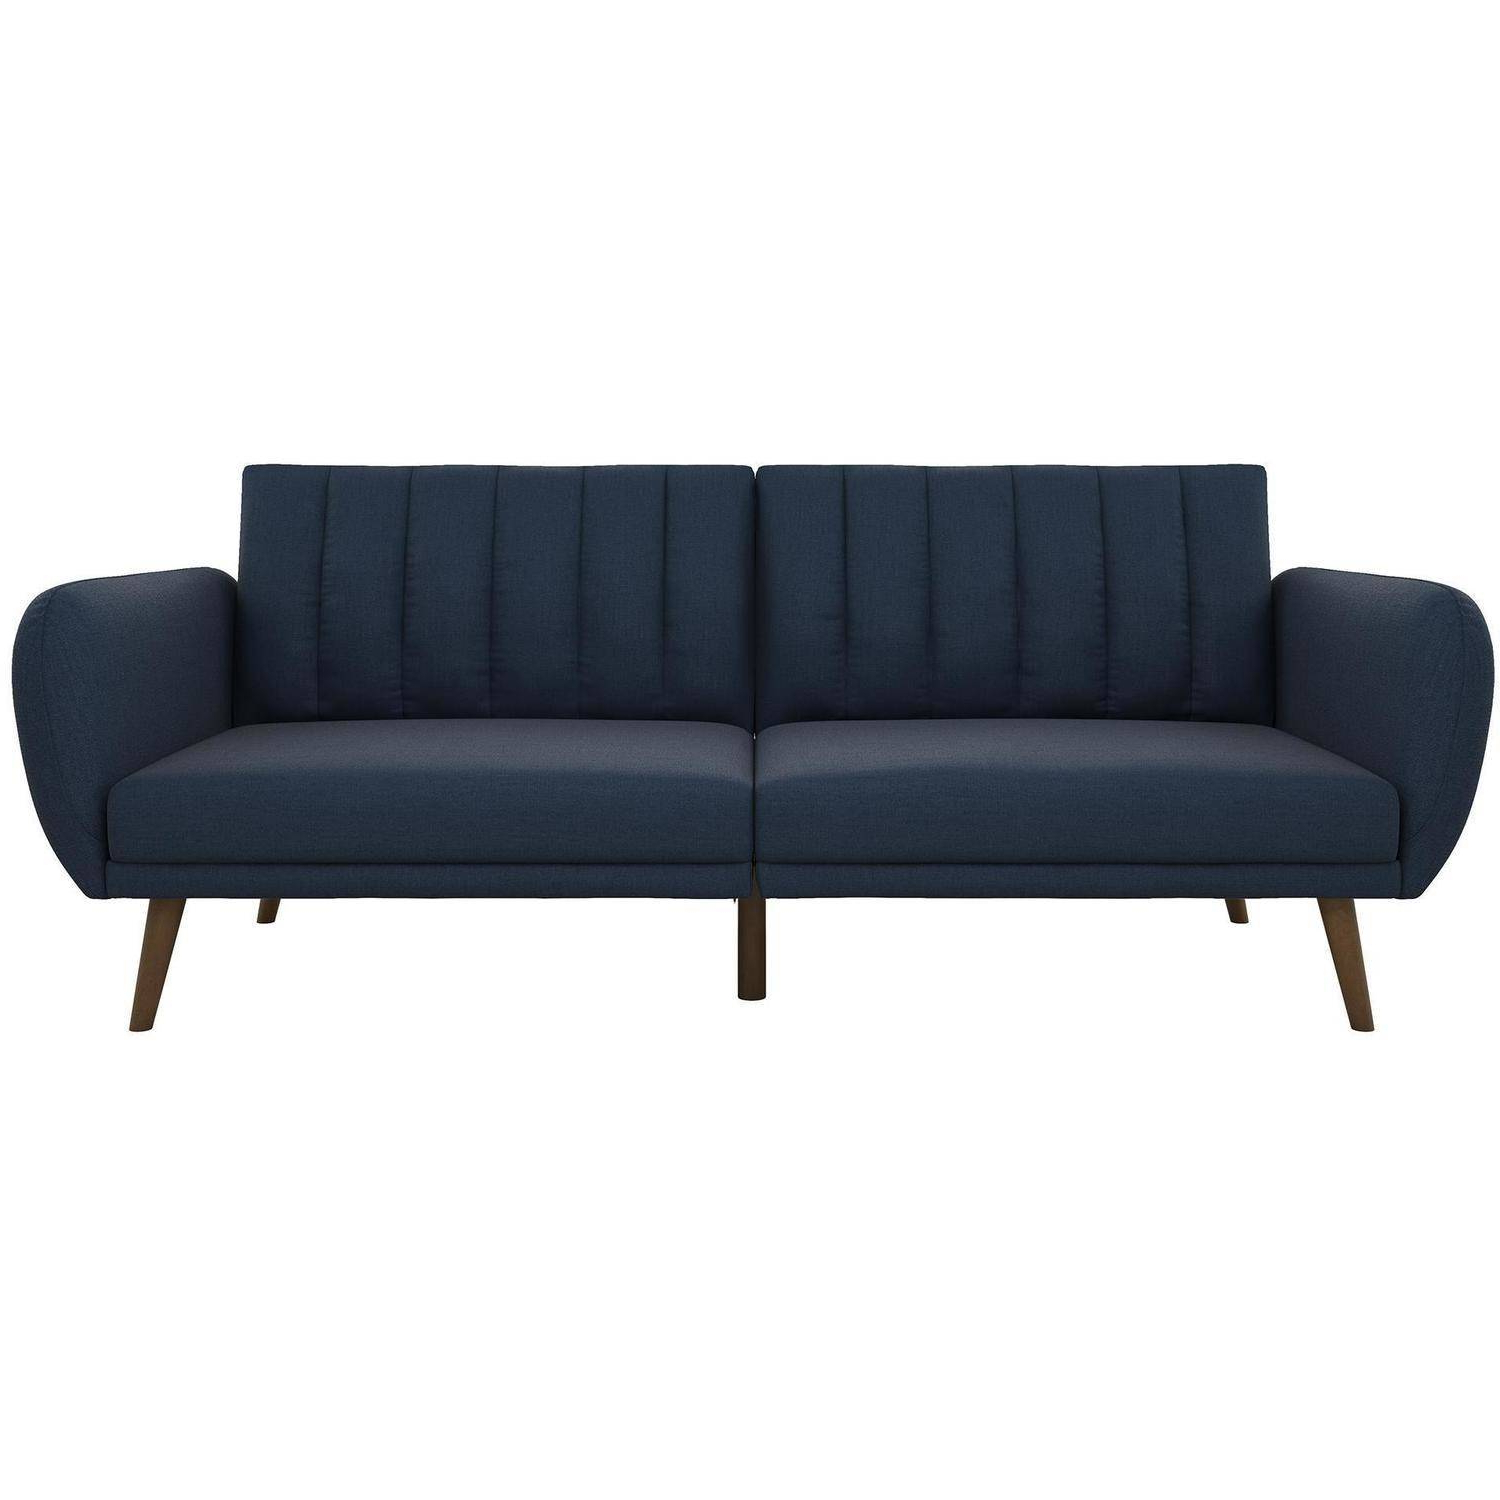 Novogratz Brittany Linen Futon Couch, Multiple Colors Inside 2018 Brittany Sectional Futon Sofas (View 5 of 25)